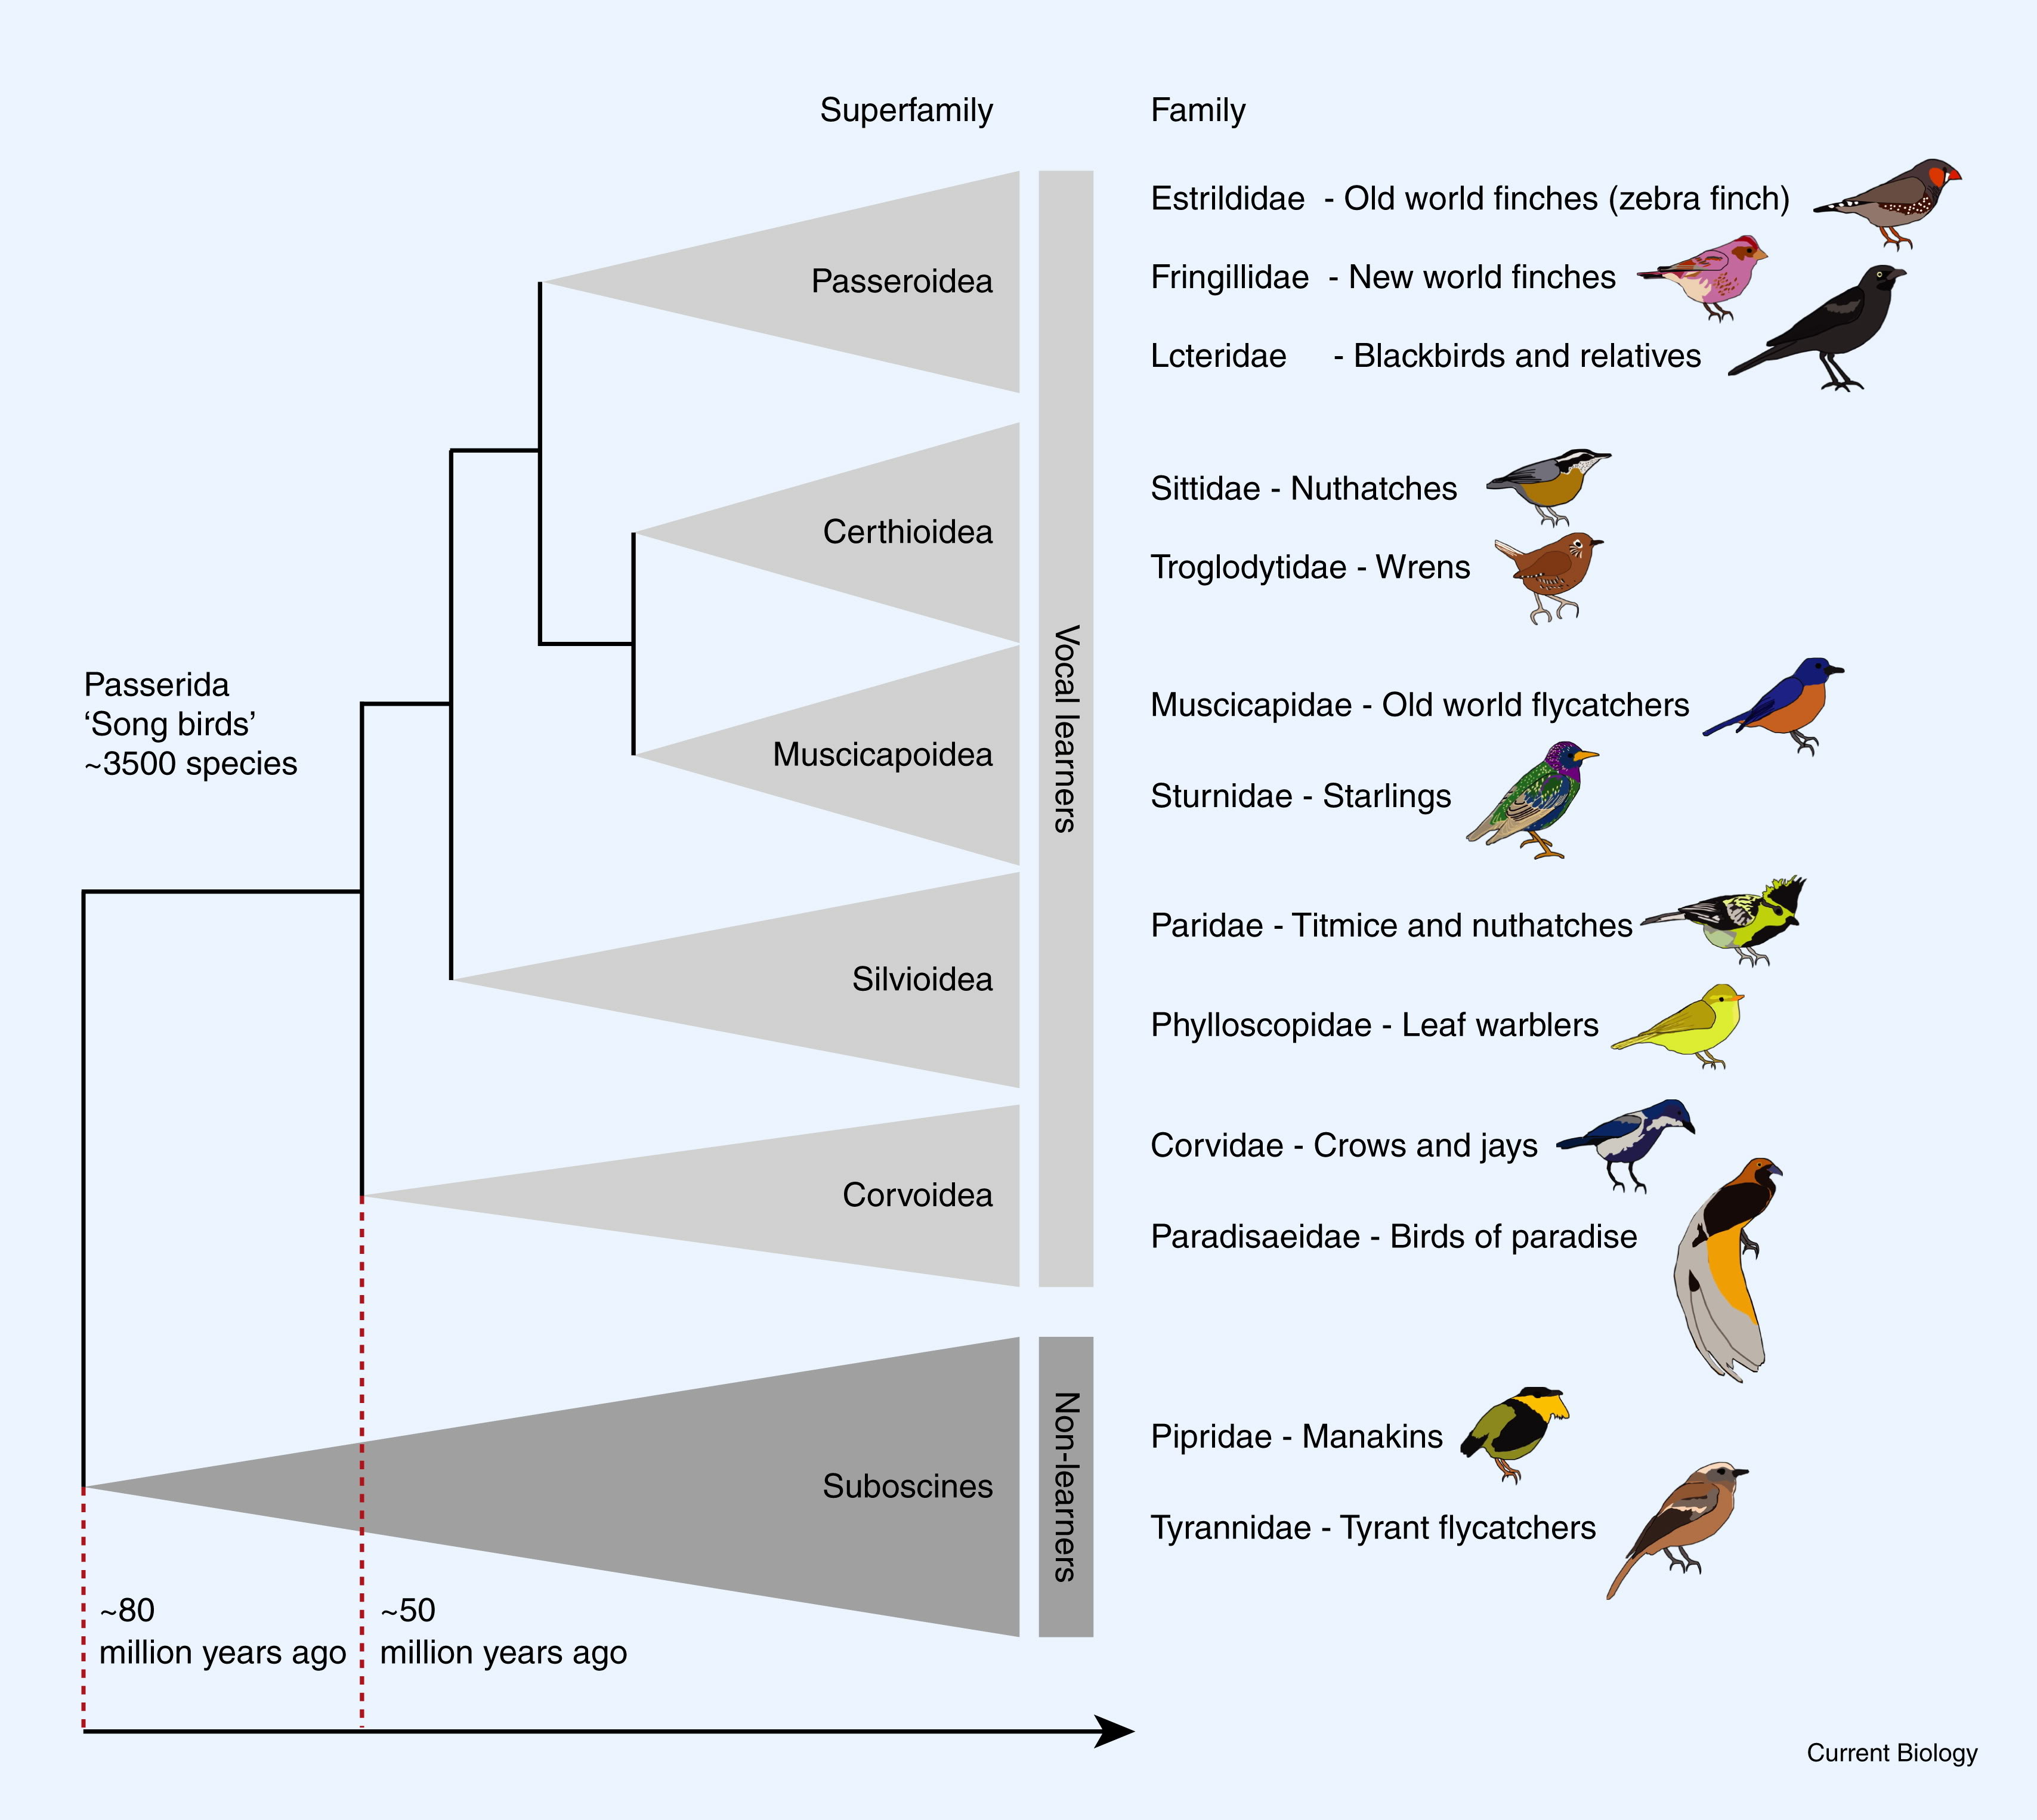 Know the song birds family tree with over 3500 species this past 80 million years ago. You can see the birds species from vocal learners up to non learners. Vocal […]